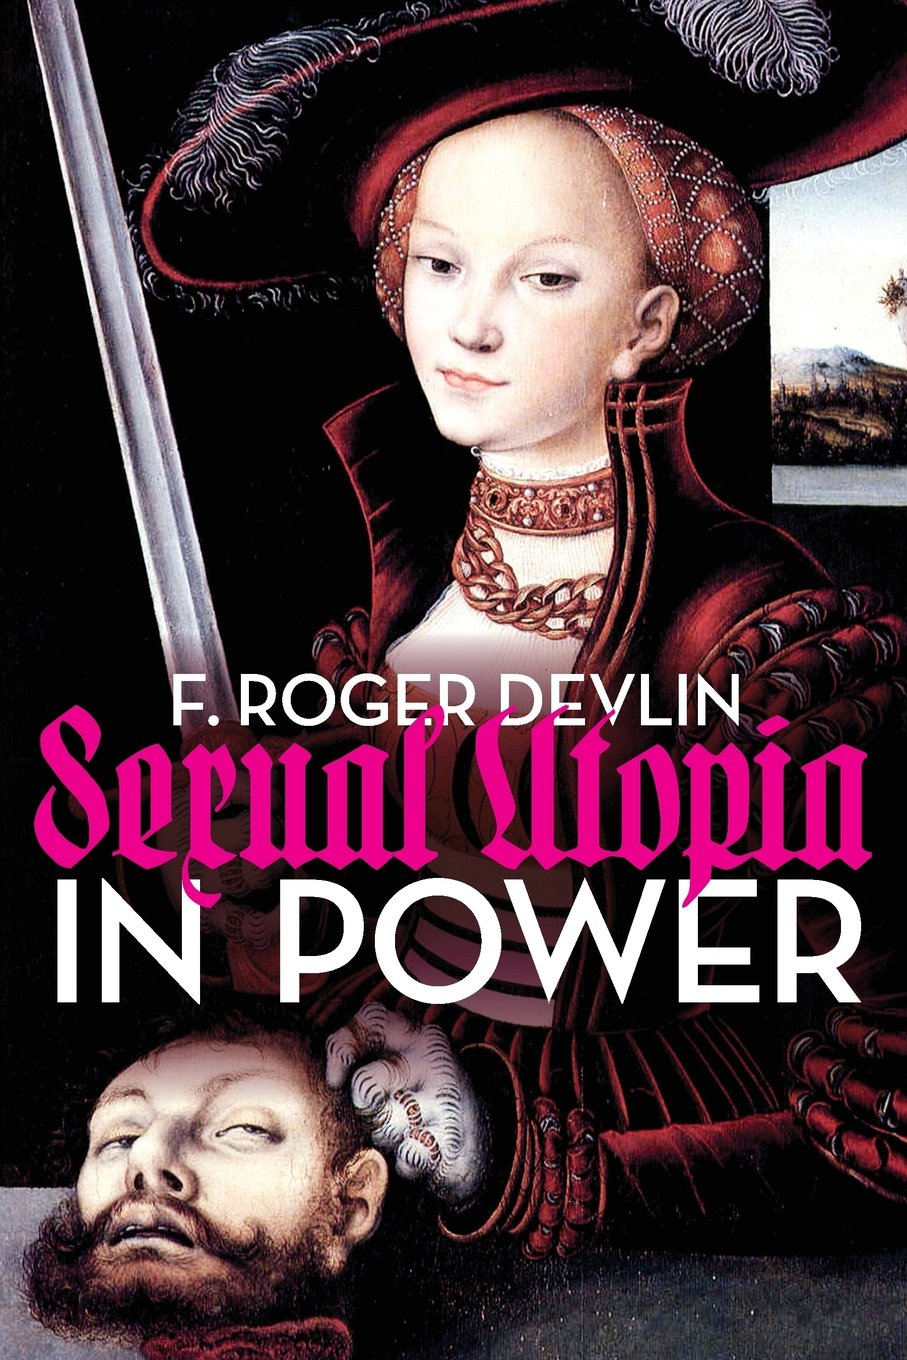 sexual utopia in power f roger devlin com sexual utopia in power f roger devlin 9781935965893 com books